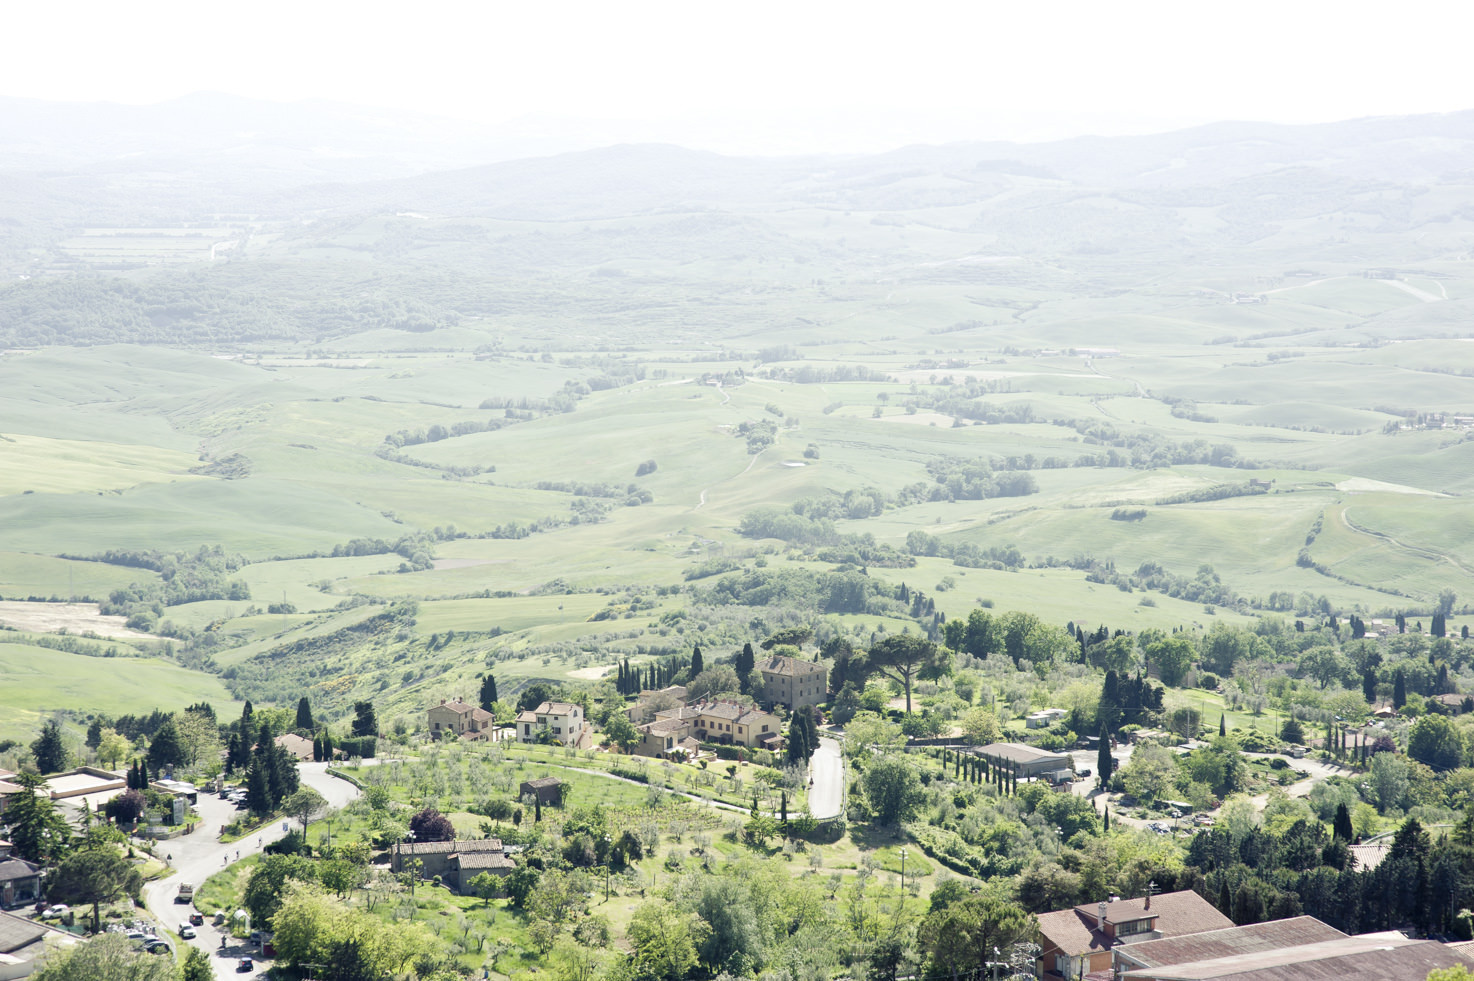 View over the countryside from the hill of Volterra